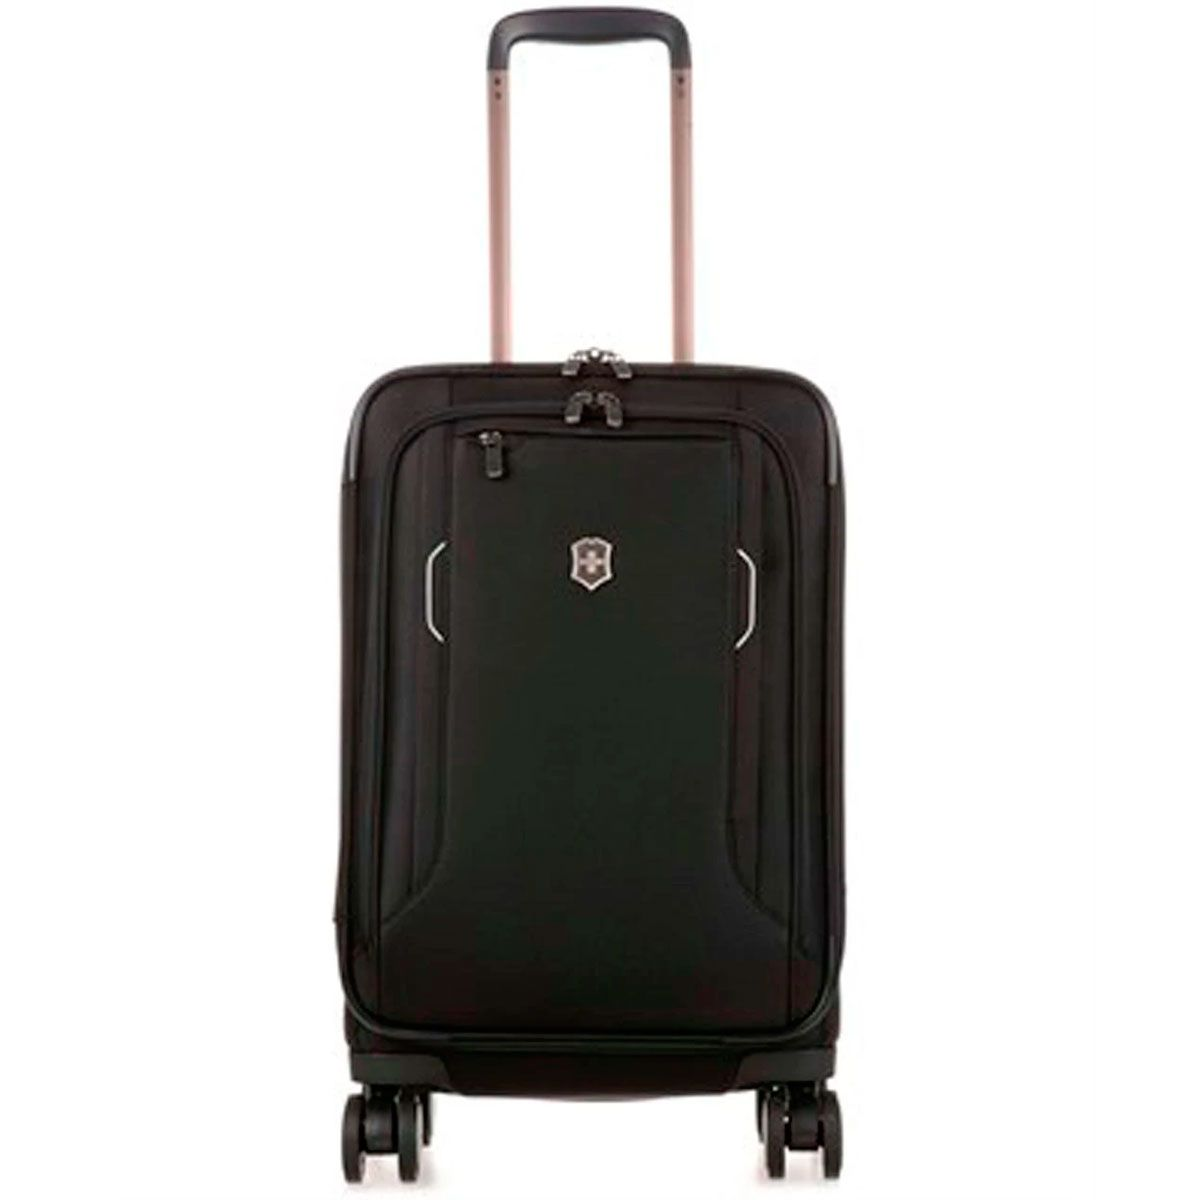 Mala de Bordo Werks Traveler 6.0 Softside Frequent Flyer Carry-On - Victorinox